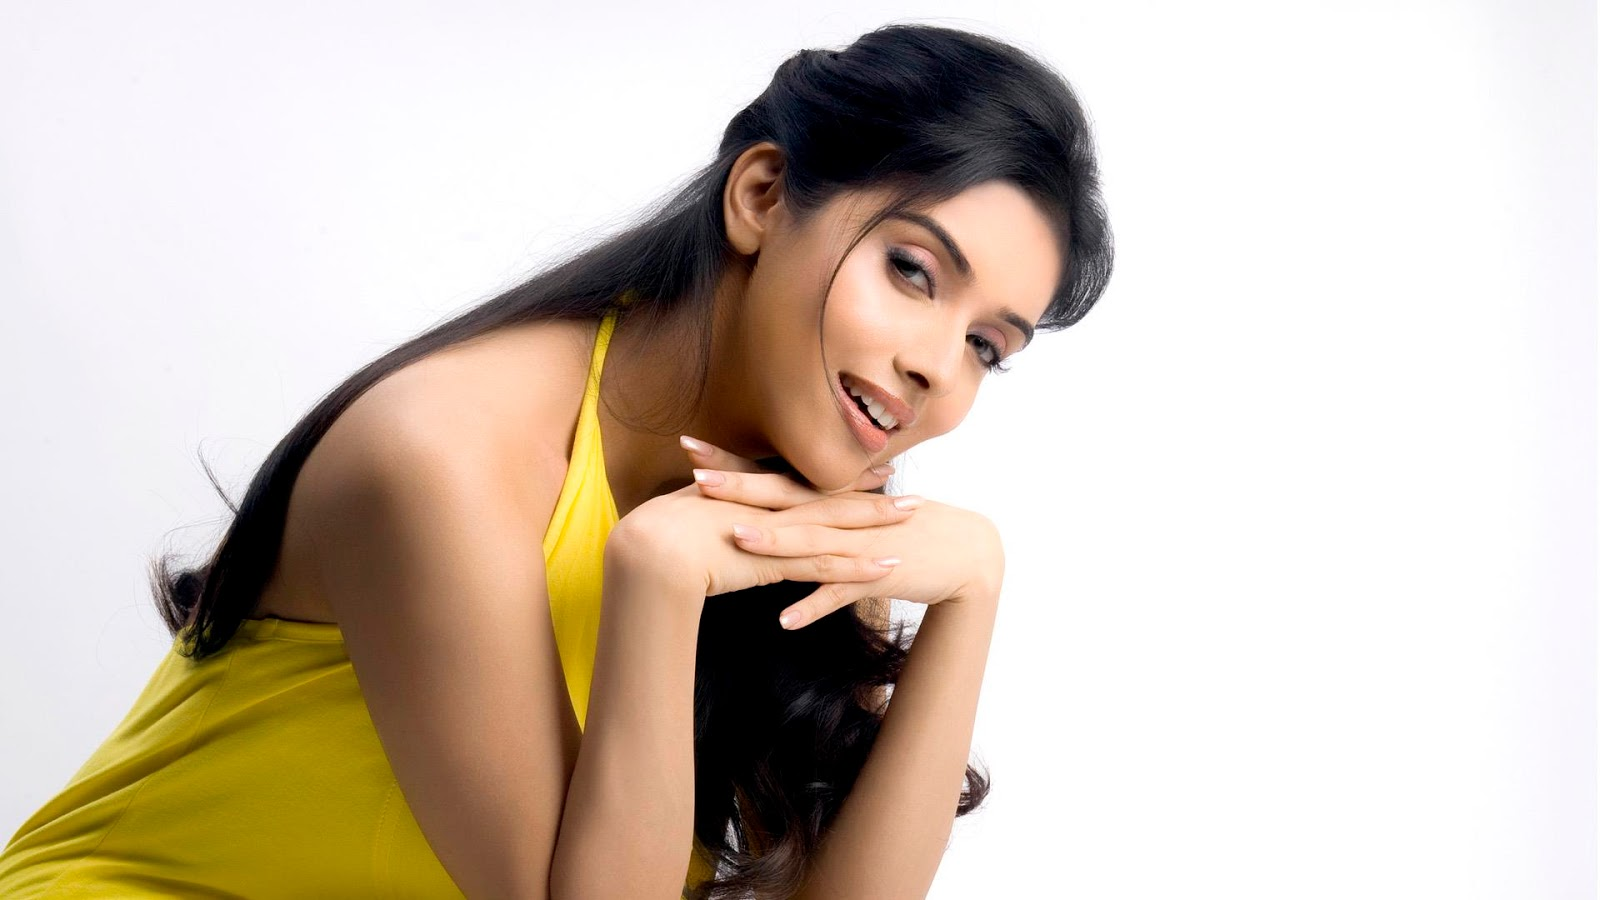 asin thottumkal wallpapers celebrity hq asin thottumkal pictures 4k wallpapers 2019 asin thottumkal wallpapers celebrity